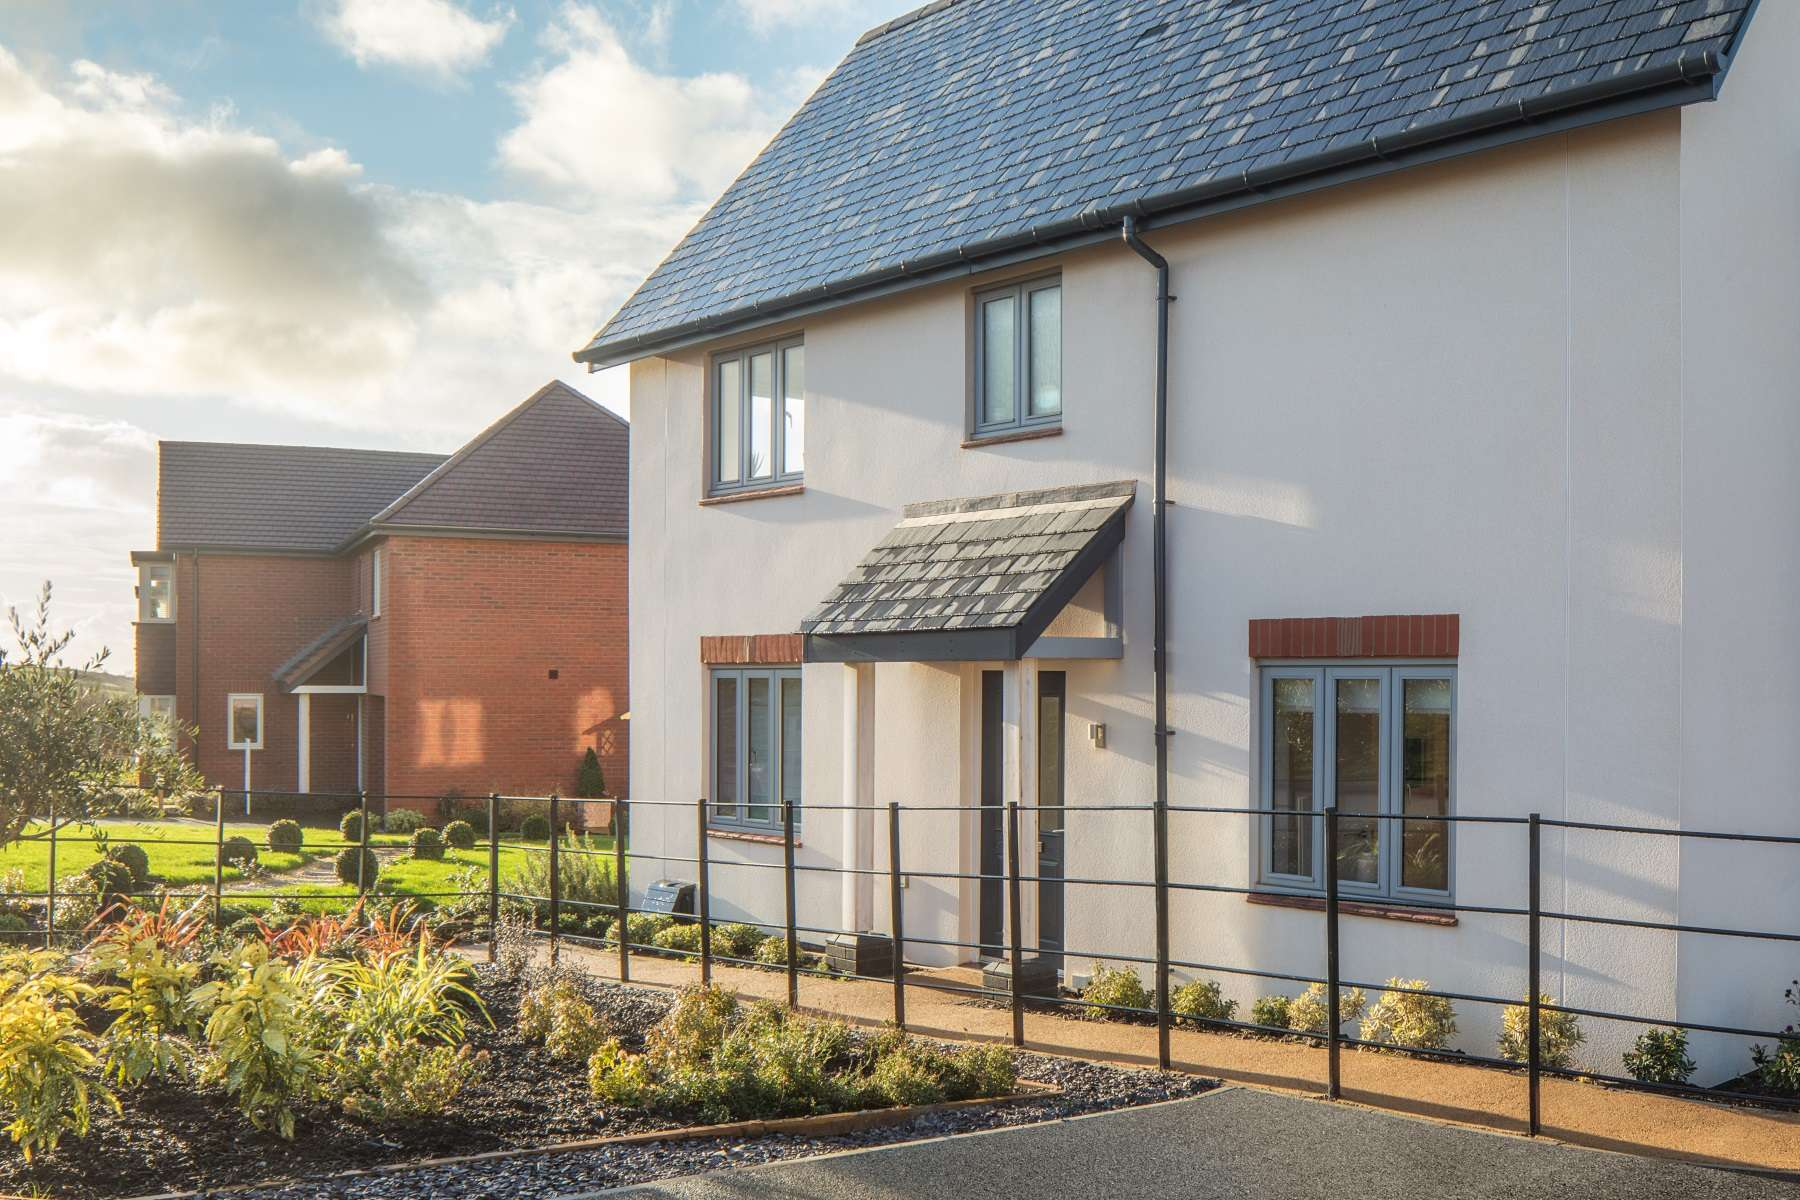 Plumb Park - New homes in Exmouth | Taylor Wimpey